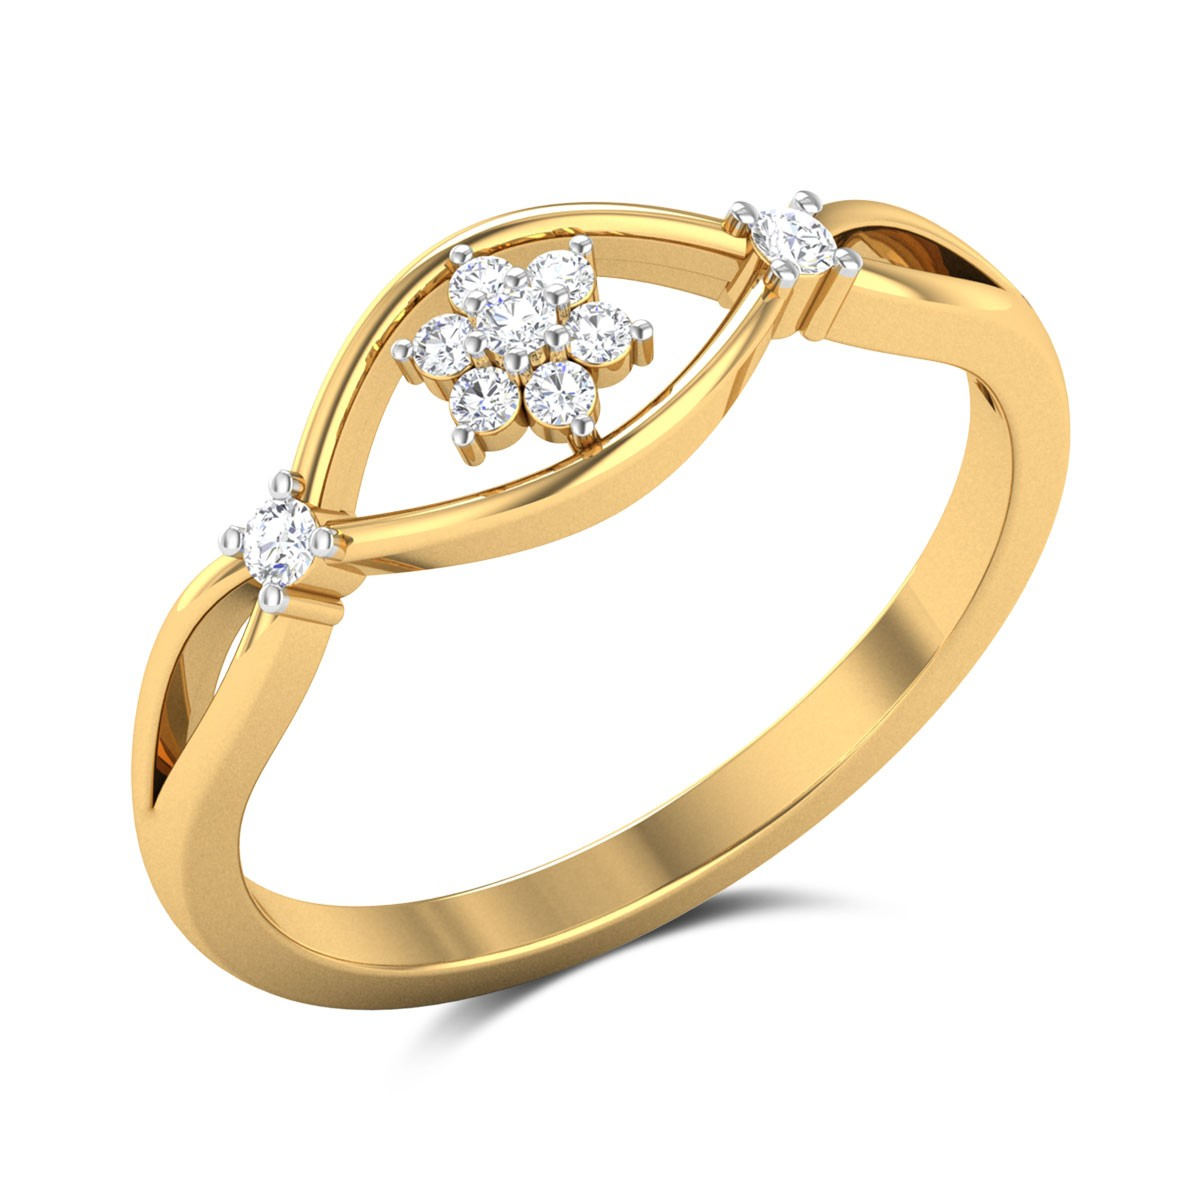 Harriet Diamond Ring